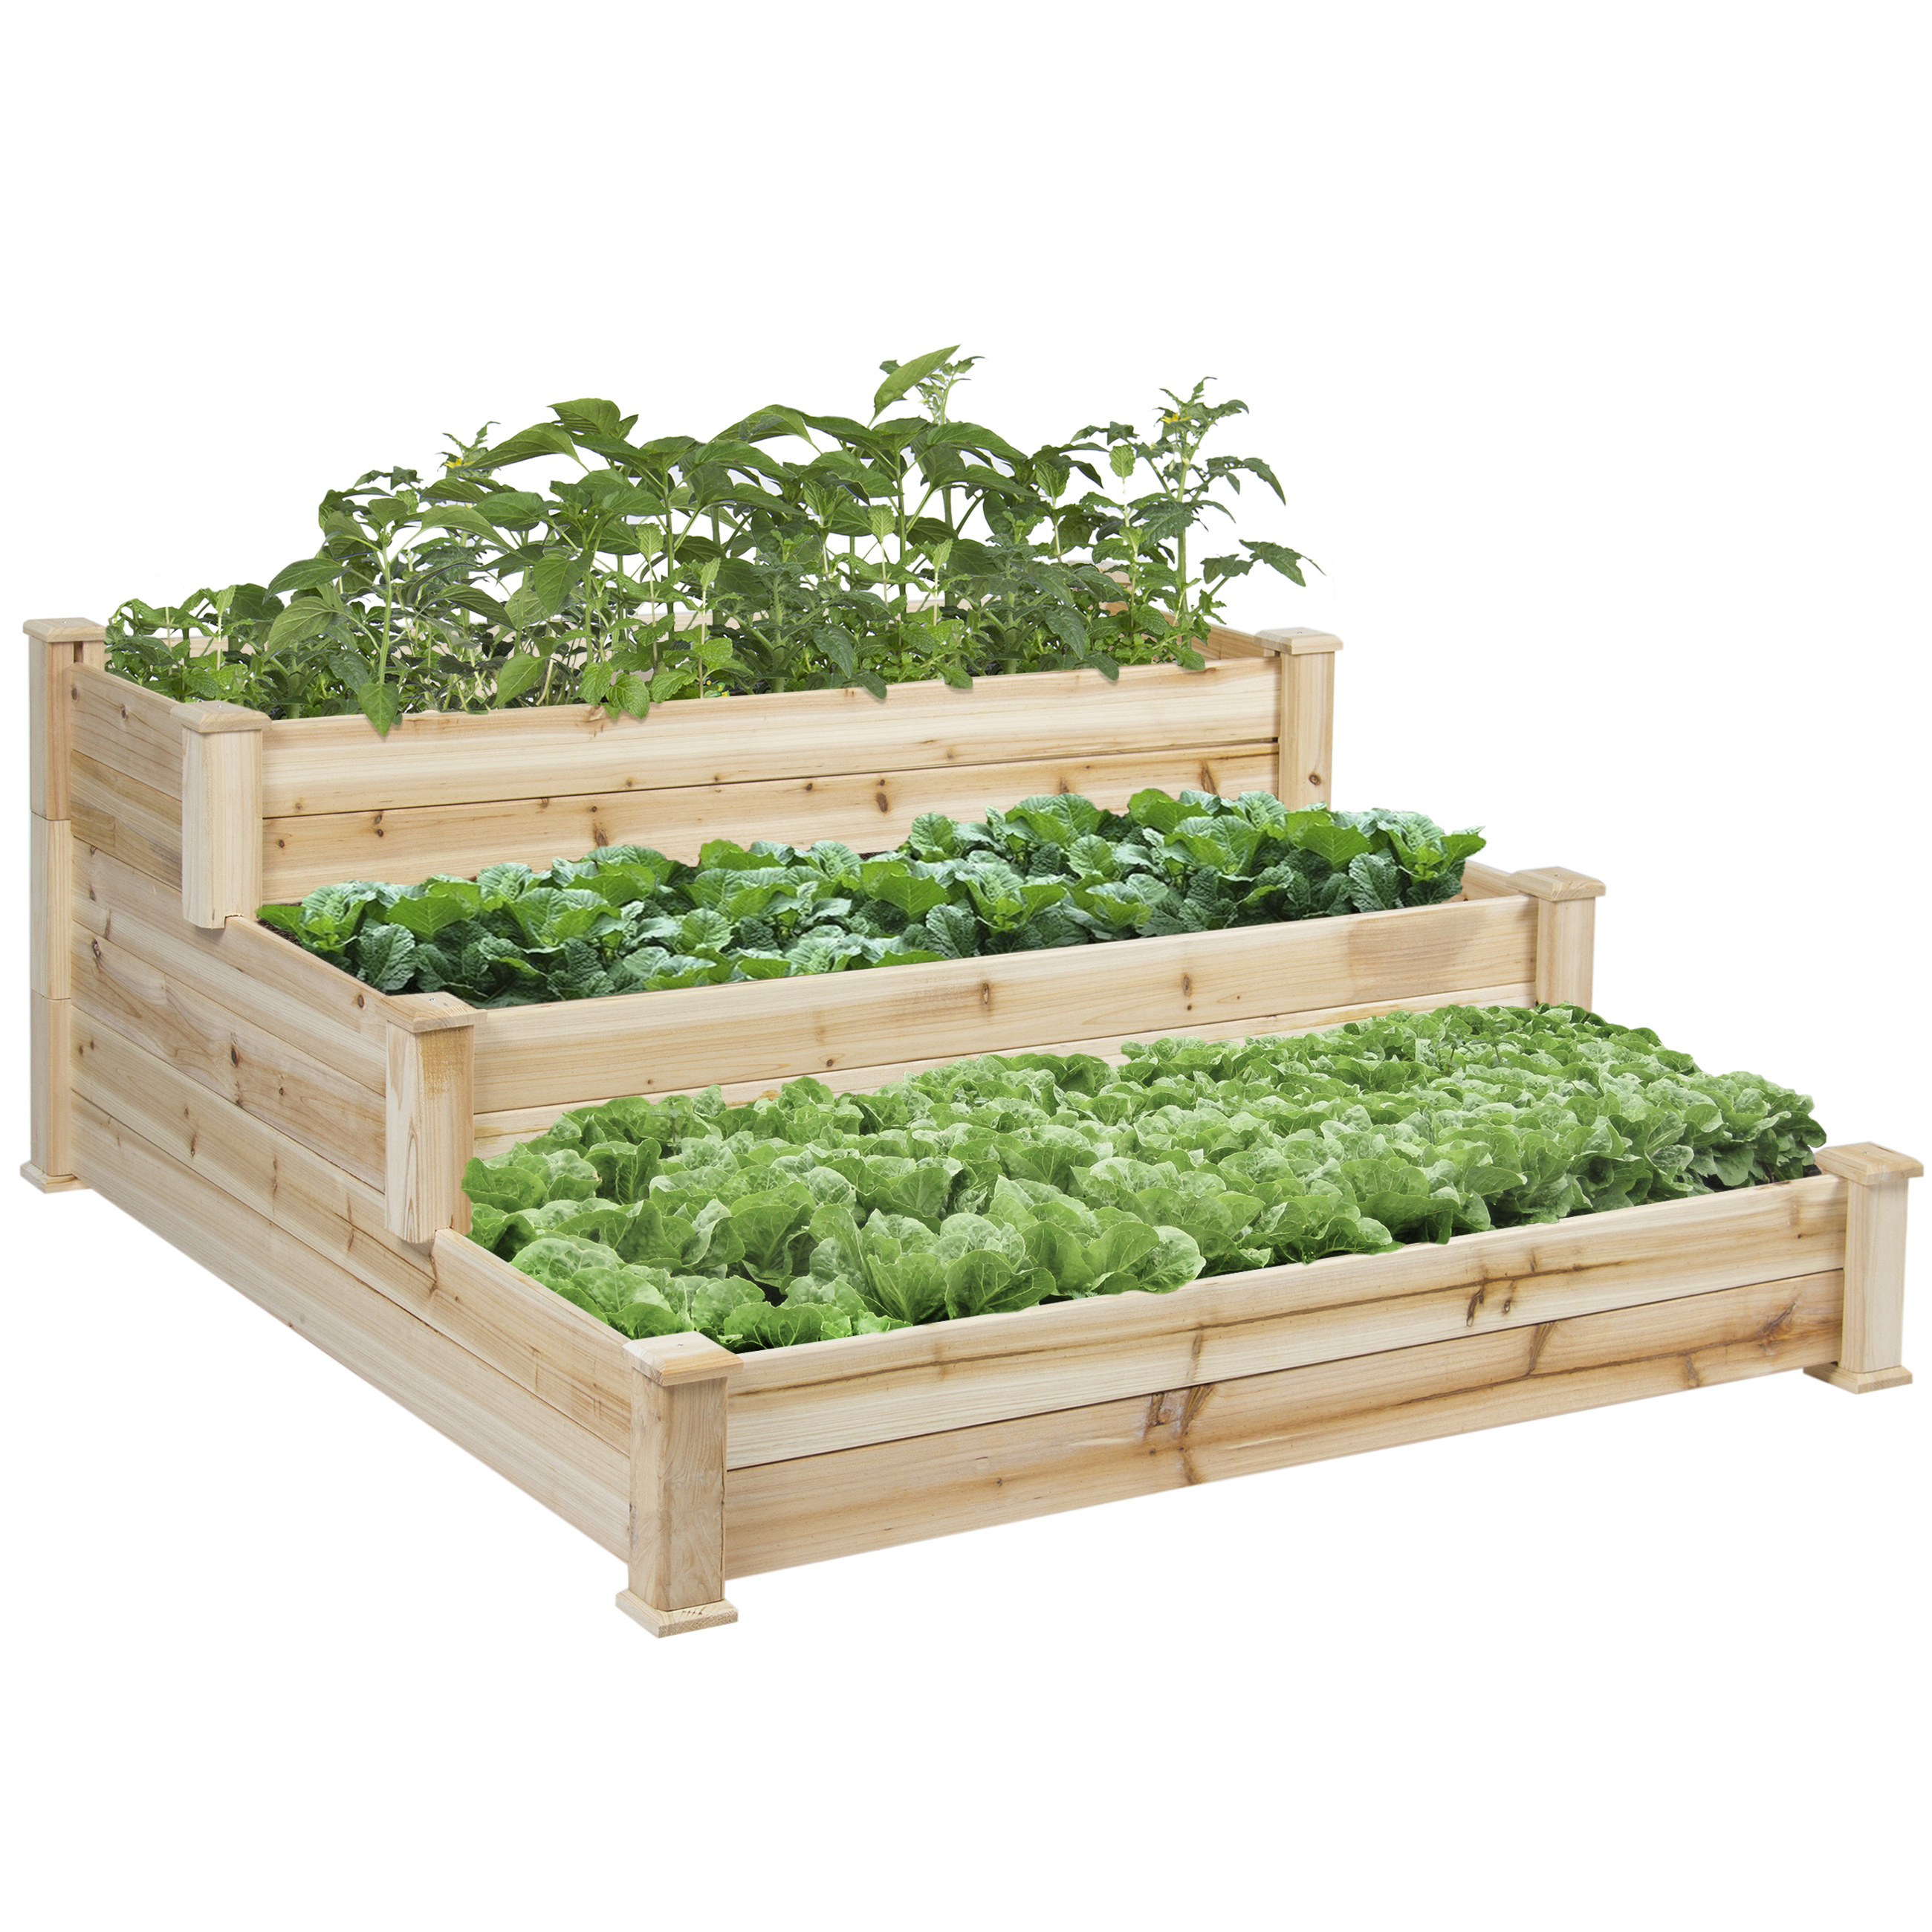 BCP Wooden Raised Vegetable Garden Bed 3 Tier Elevated Planter Kit Outdoor Gardening by Planters